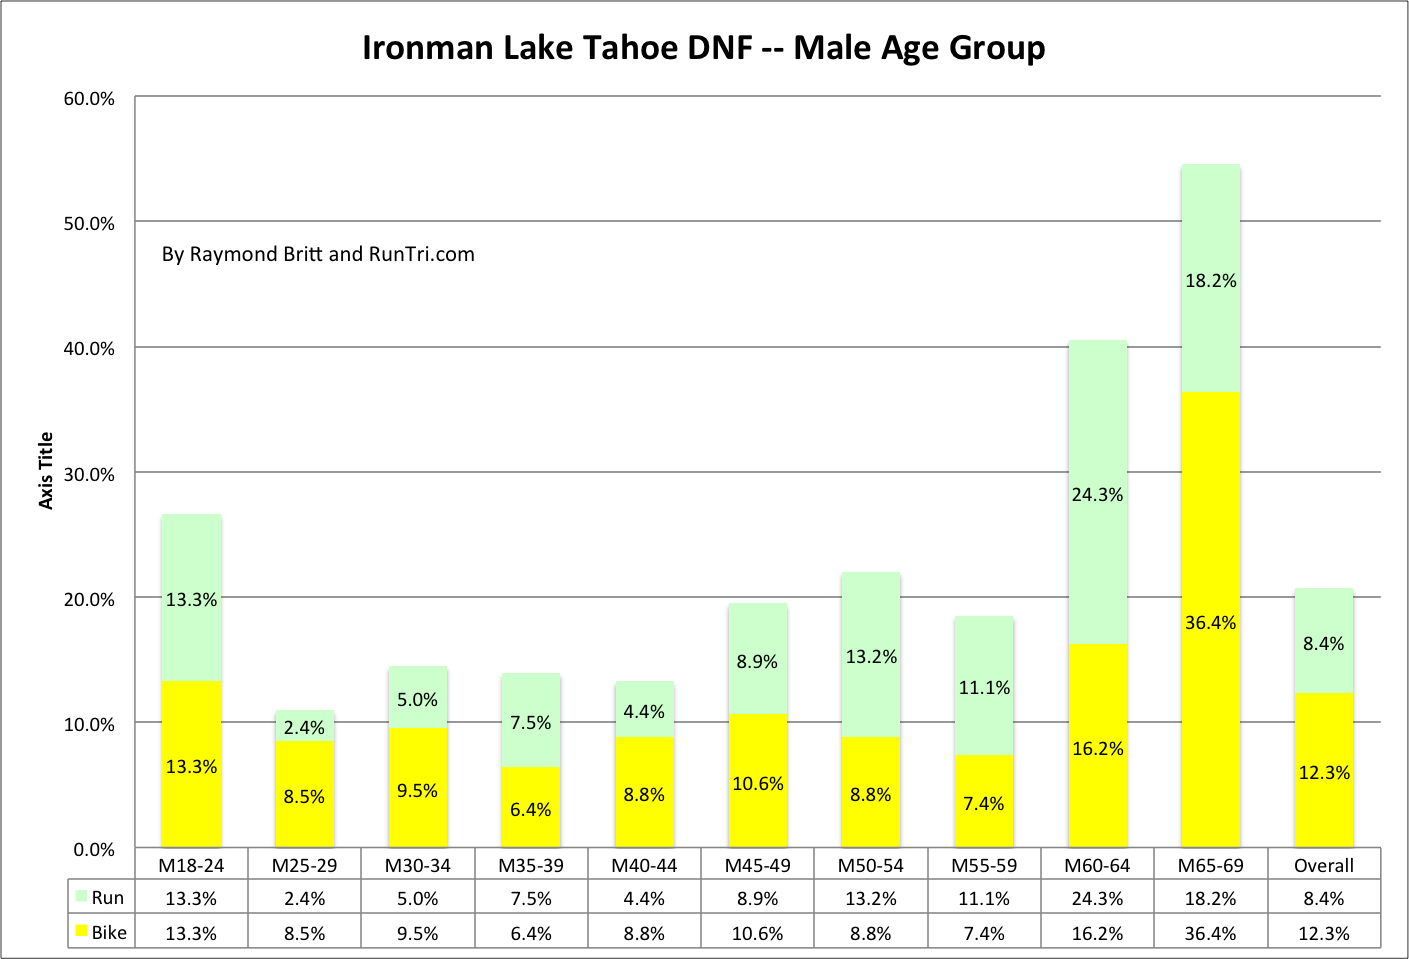 Runtri ironman lake tahoe dnf did not finish rates analysis 2 ironman lake tahoes dnf rate falls far short of the 29 recorded at ironman st george in 2012 but ccuart Images